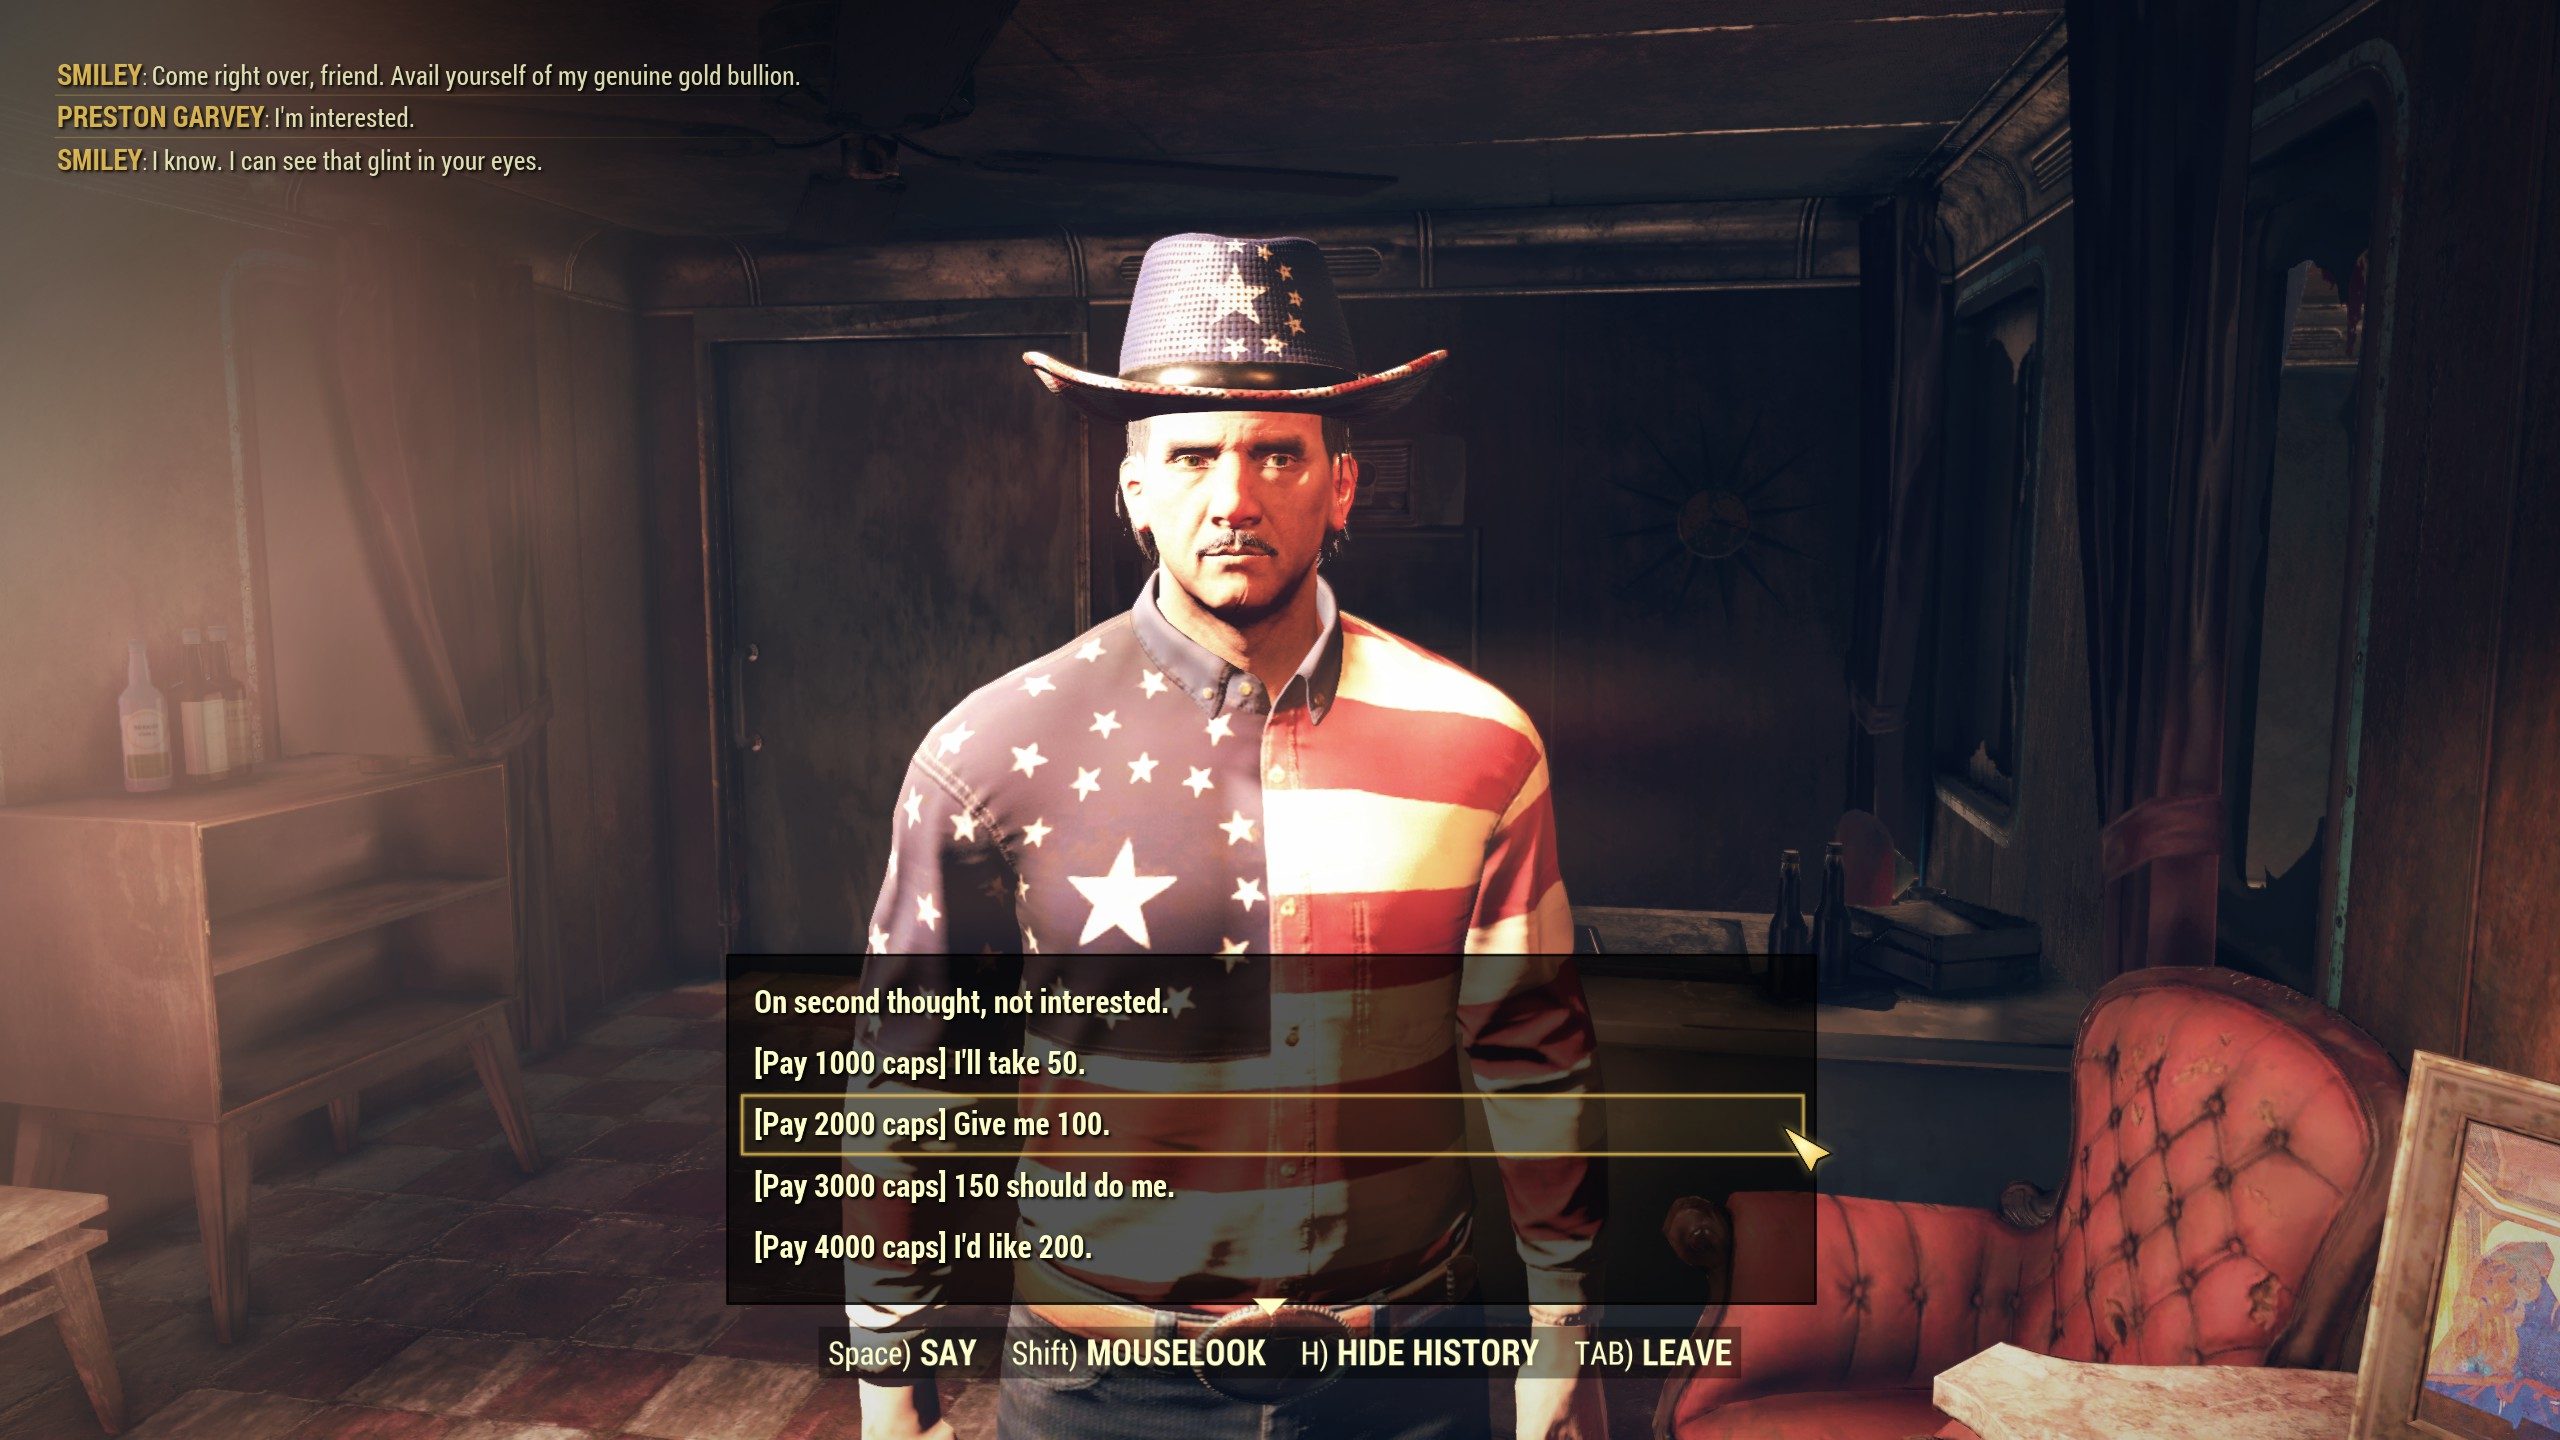 Fallout 76 All Currencies Conversions into Real Currency Guide - Preface - 57A3D60